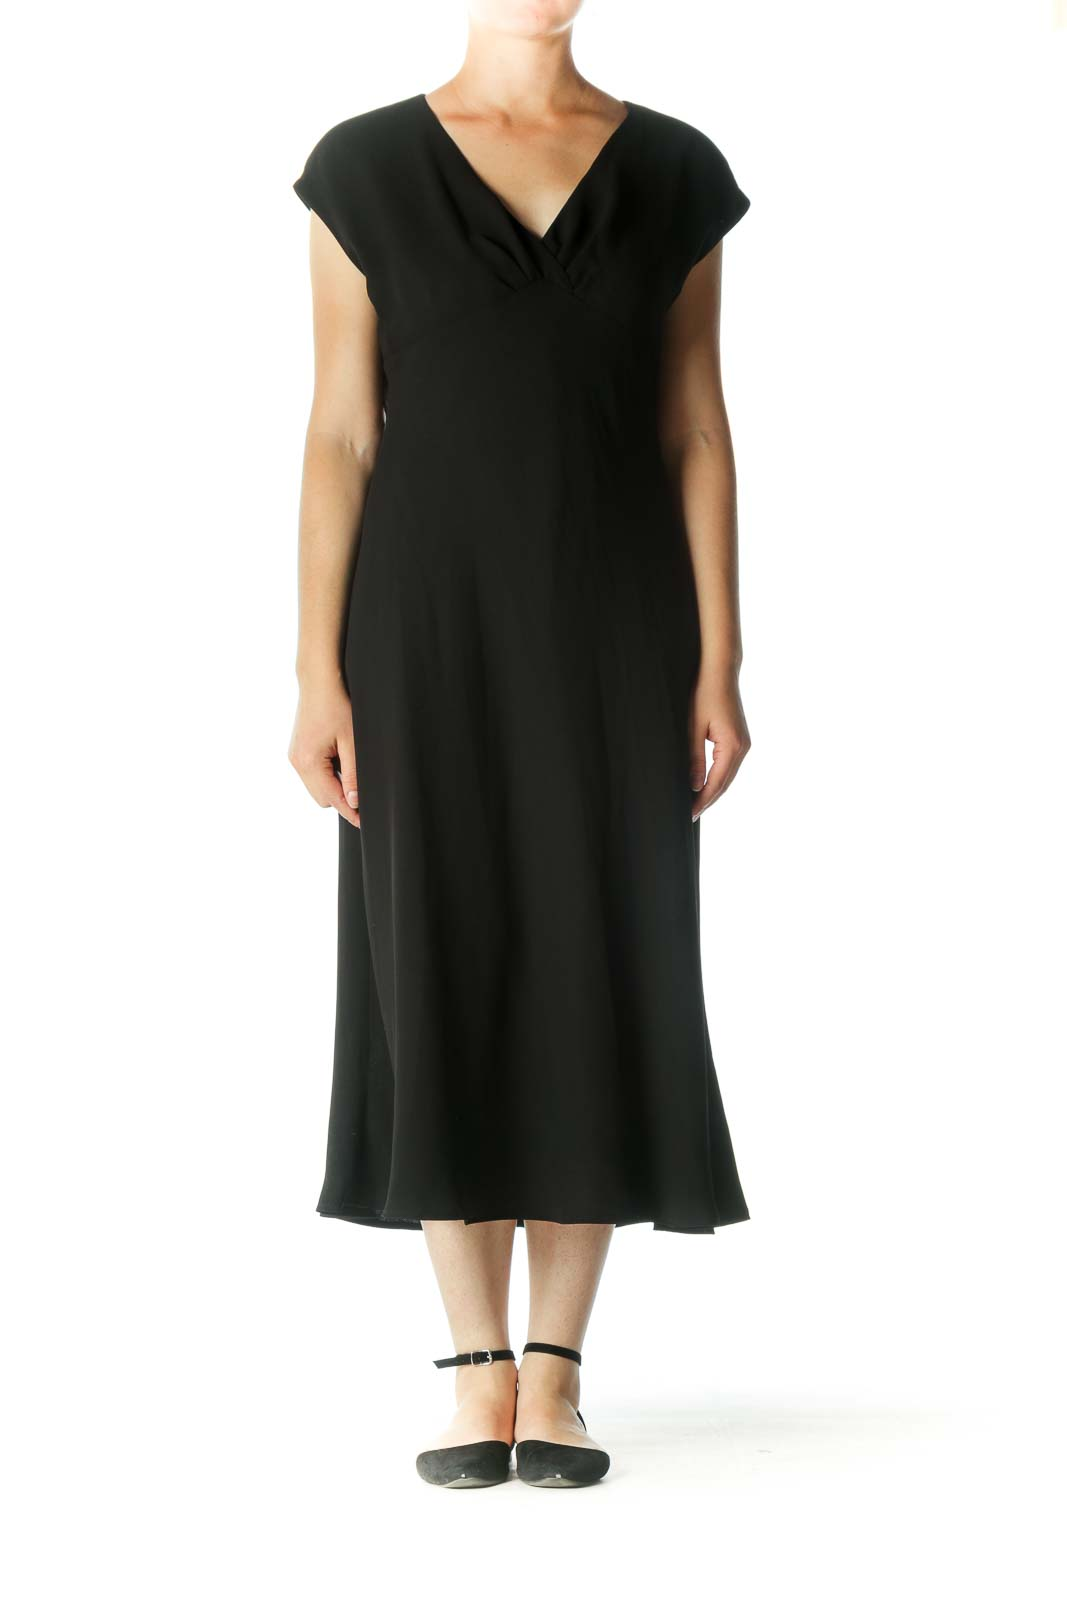 Black V-Neck Cap Sleeves Evening Dress